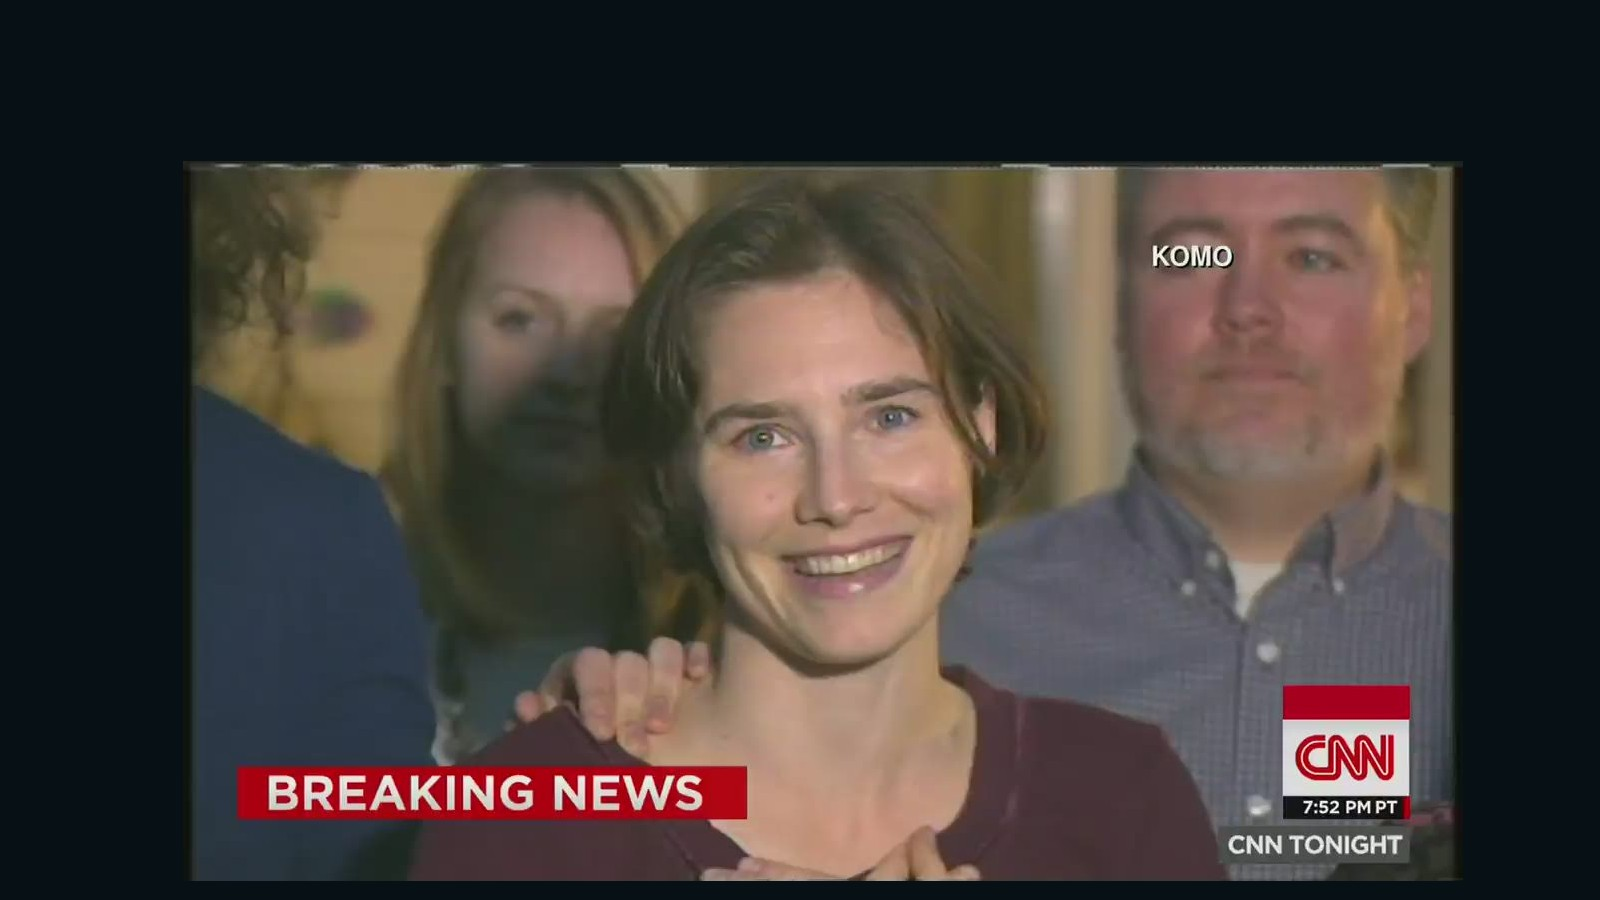 Amanda Knox: European court orders Italy to pay damages - CNN